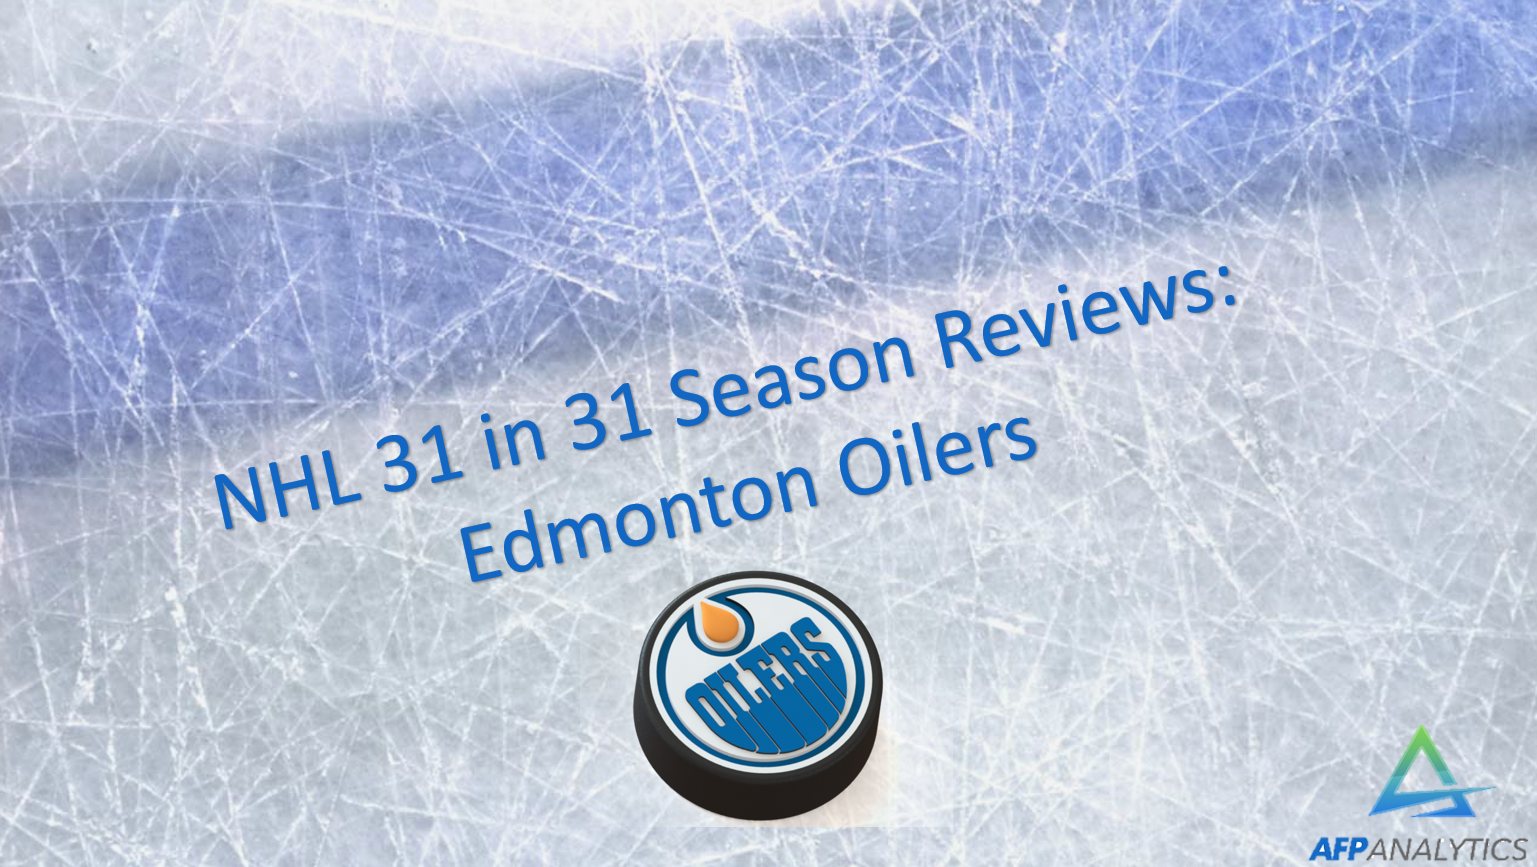 NHL 31 in 31 Season Review  Edmonton Oilers – AFP Analytics 1036a281e23a